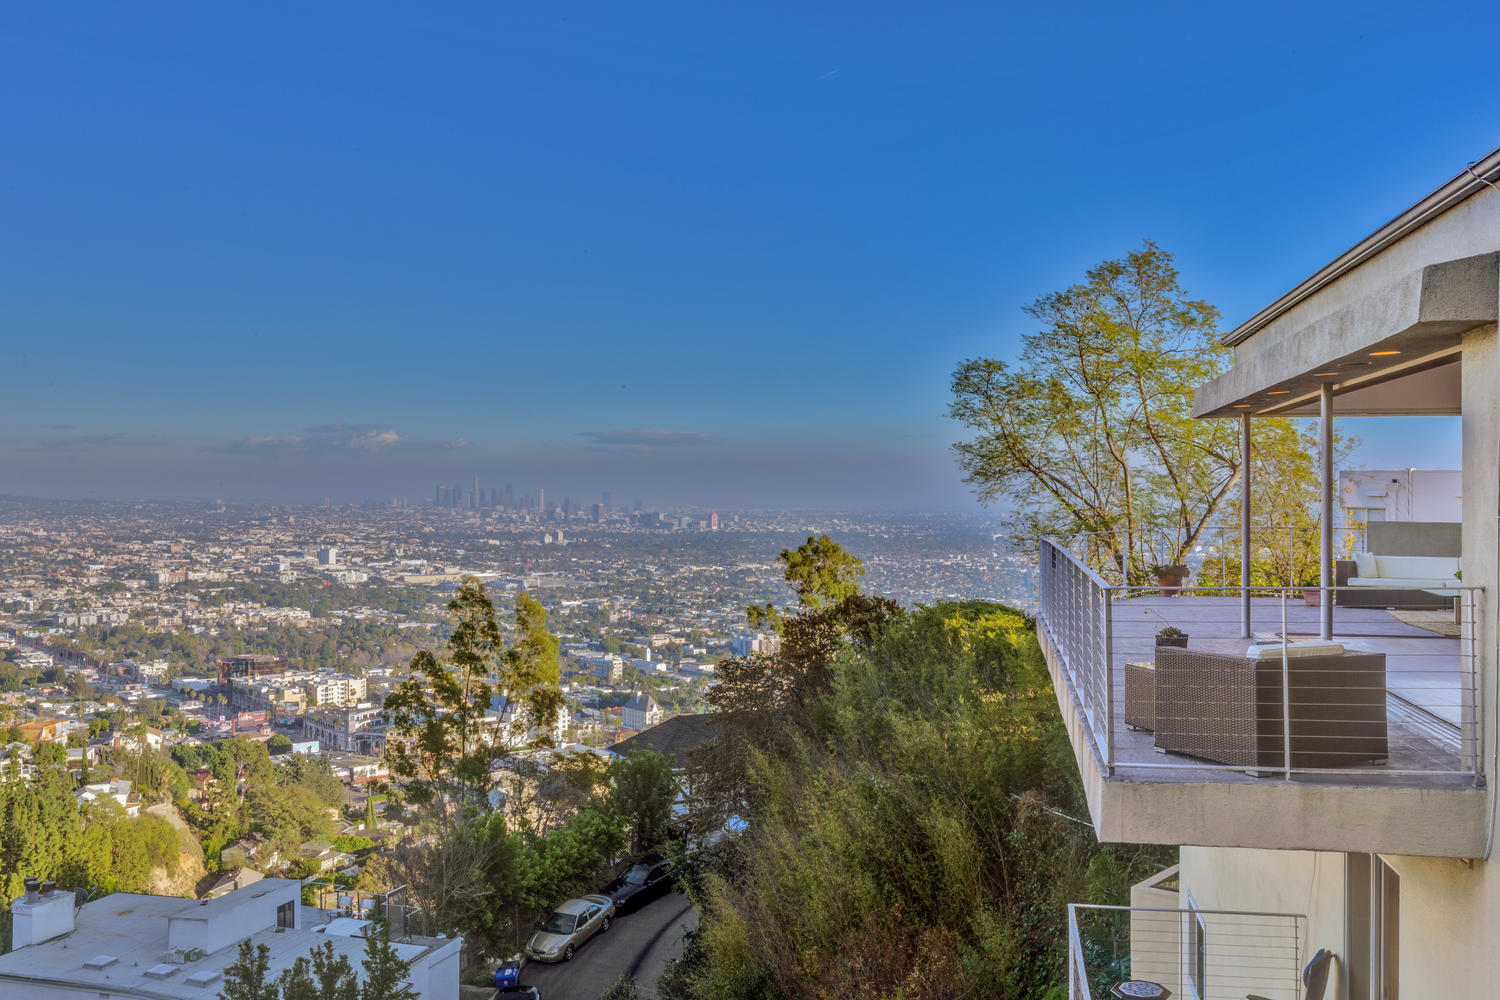 1710 Crisler Way Los Angeles-large-020-E71C4945-1500x1000-72dpi.jpg